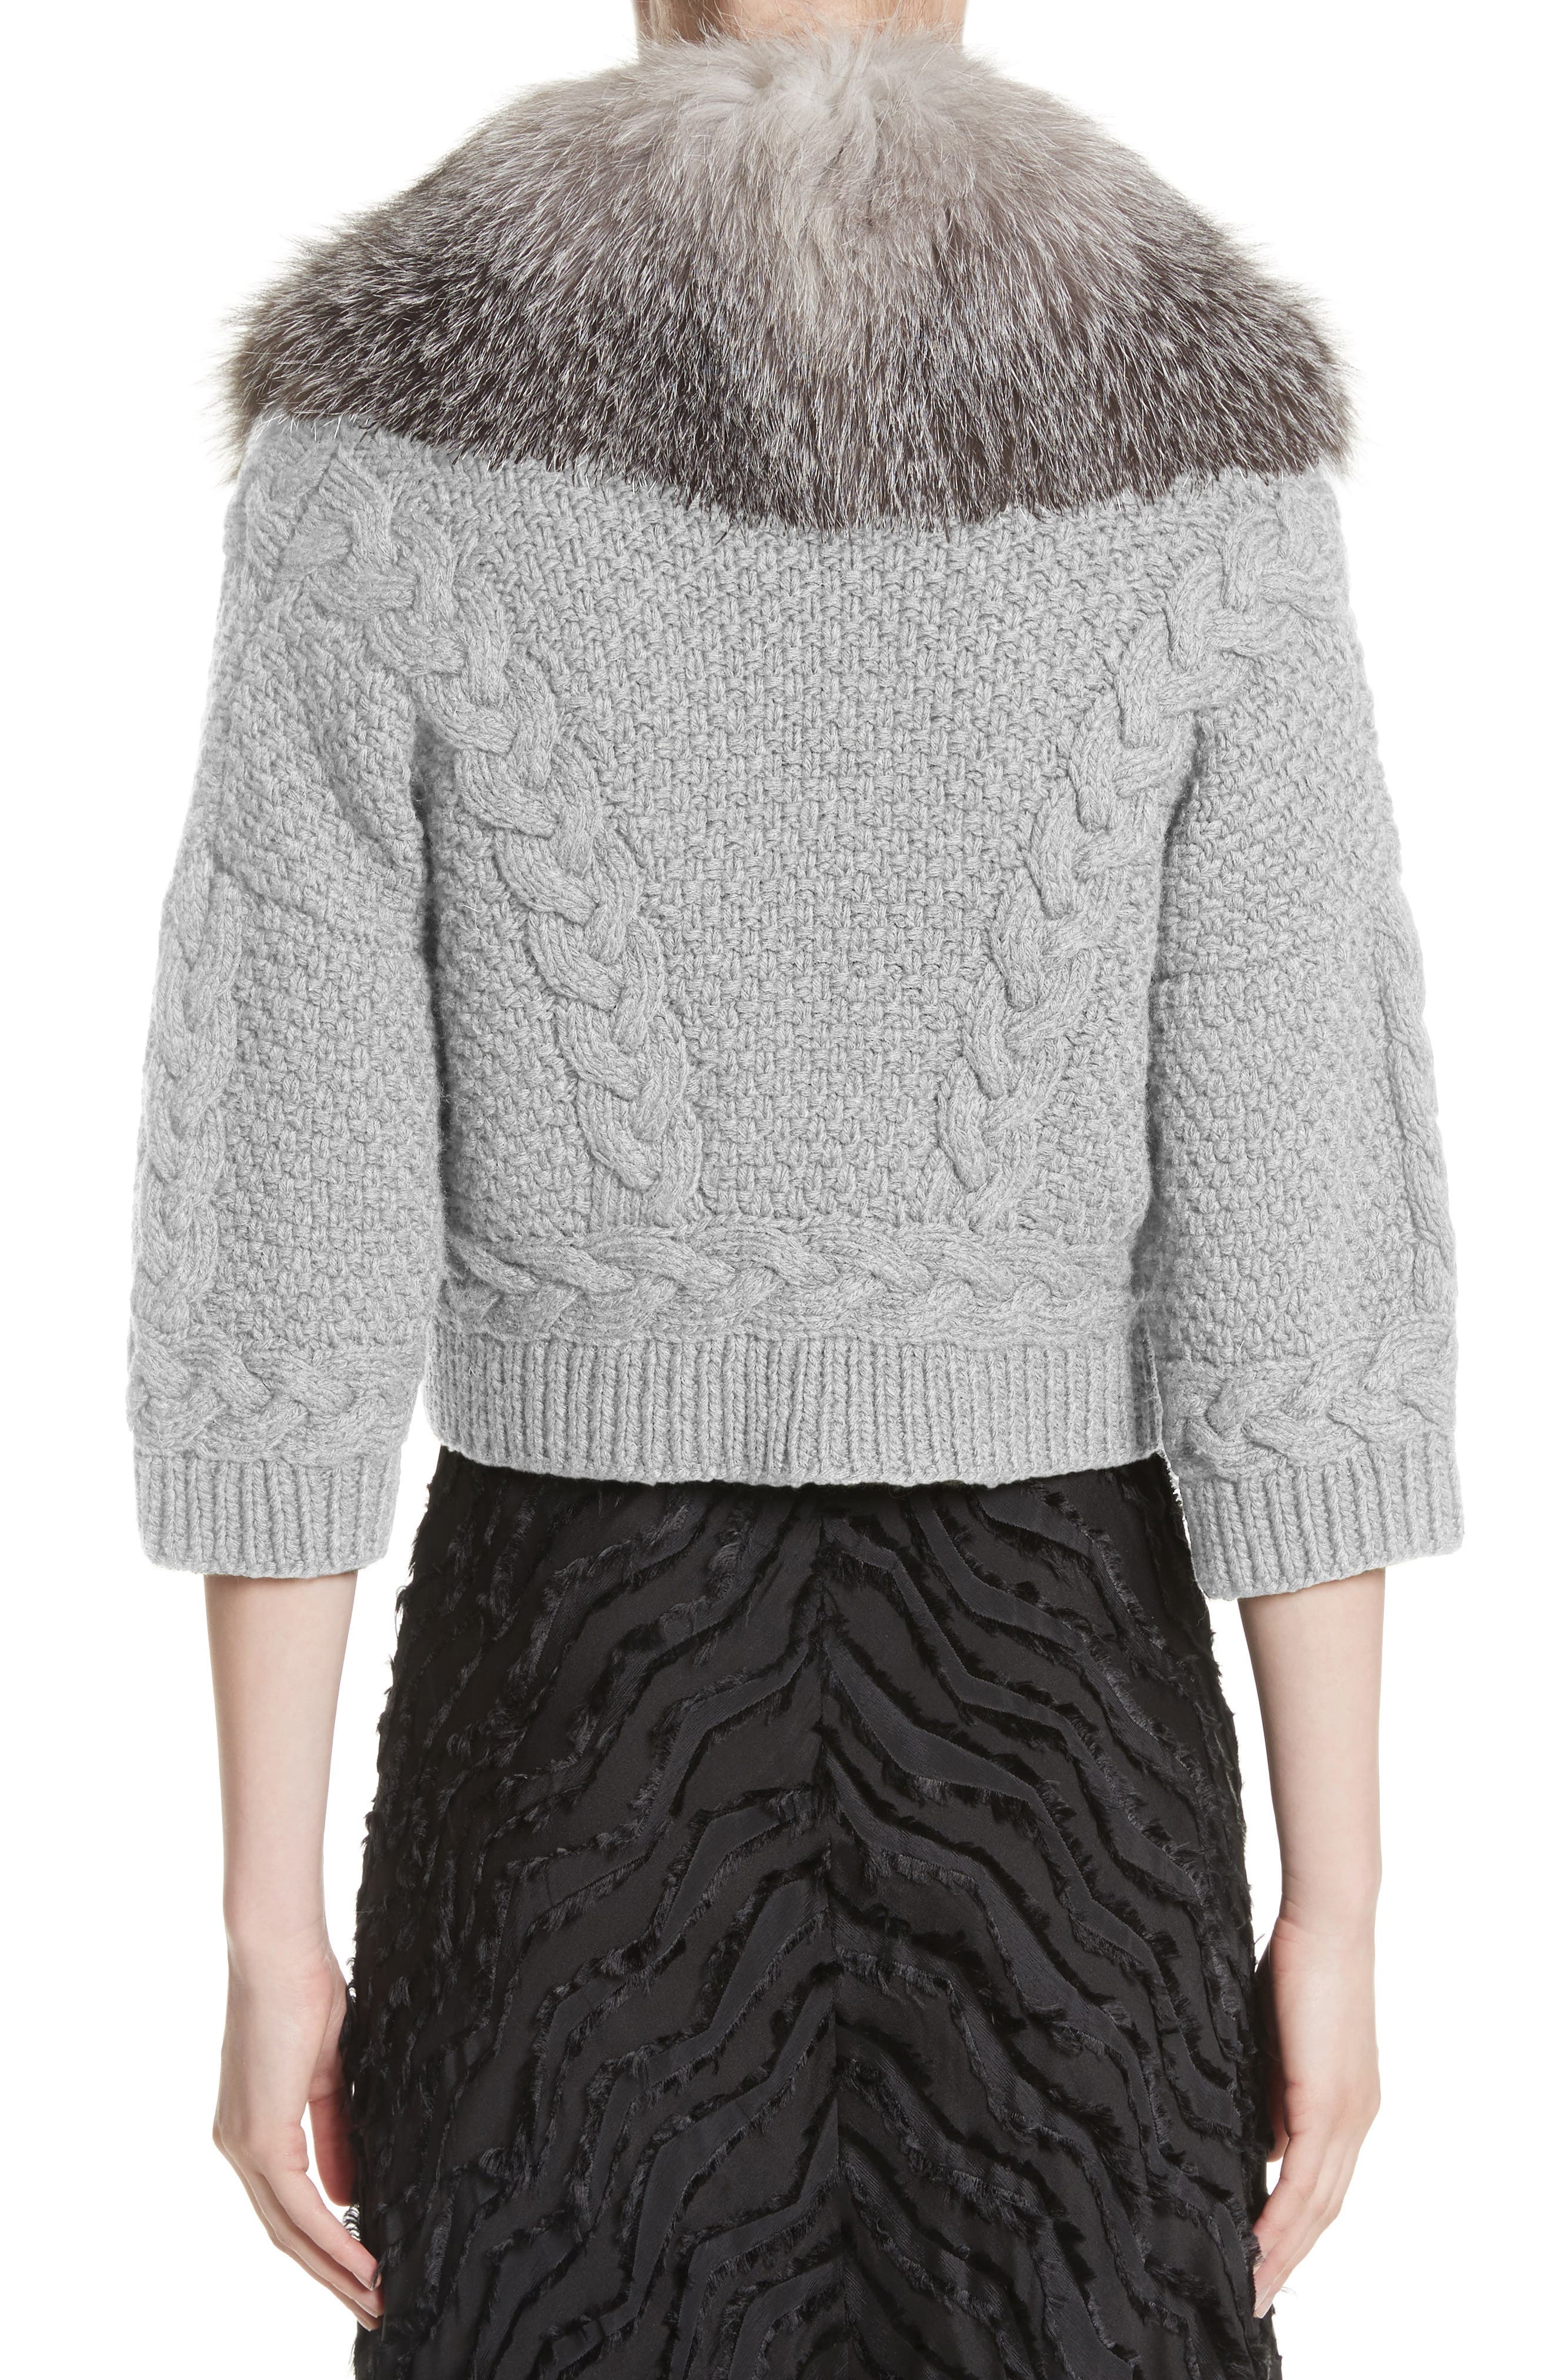 Alternate Image 2  - Yigal Azrouël Merino Wool & Cashmere Knit Bolero with Removable Genuine Fox Fur Collar